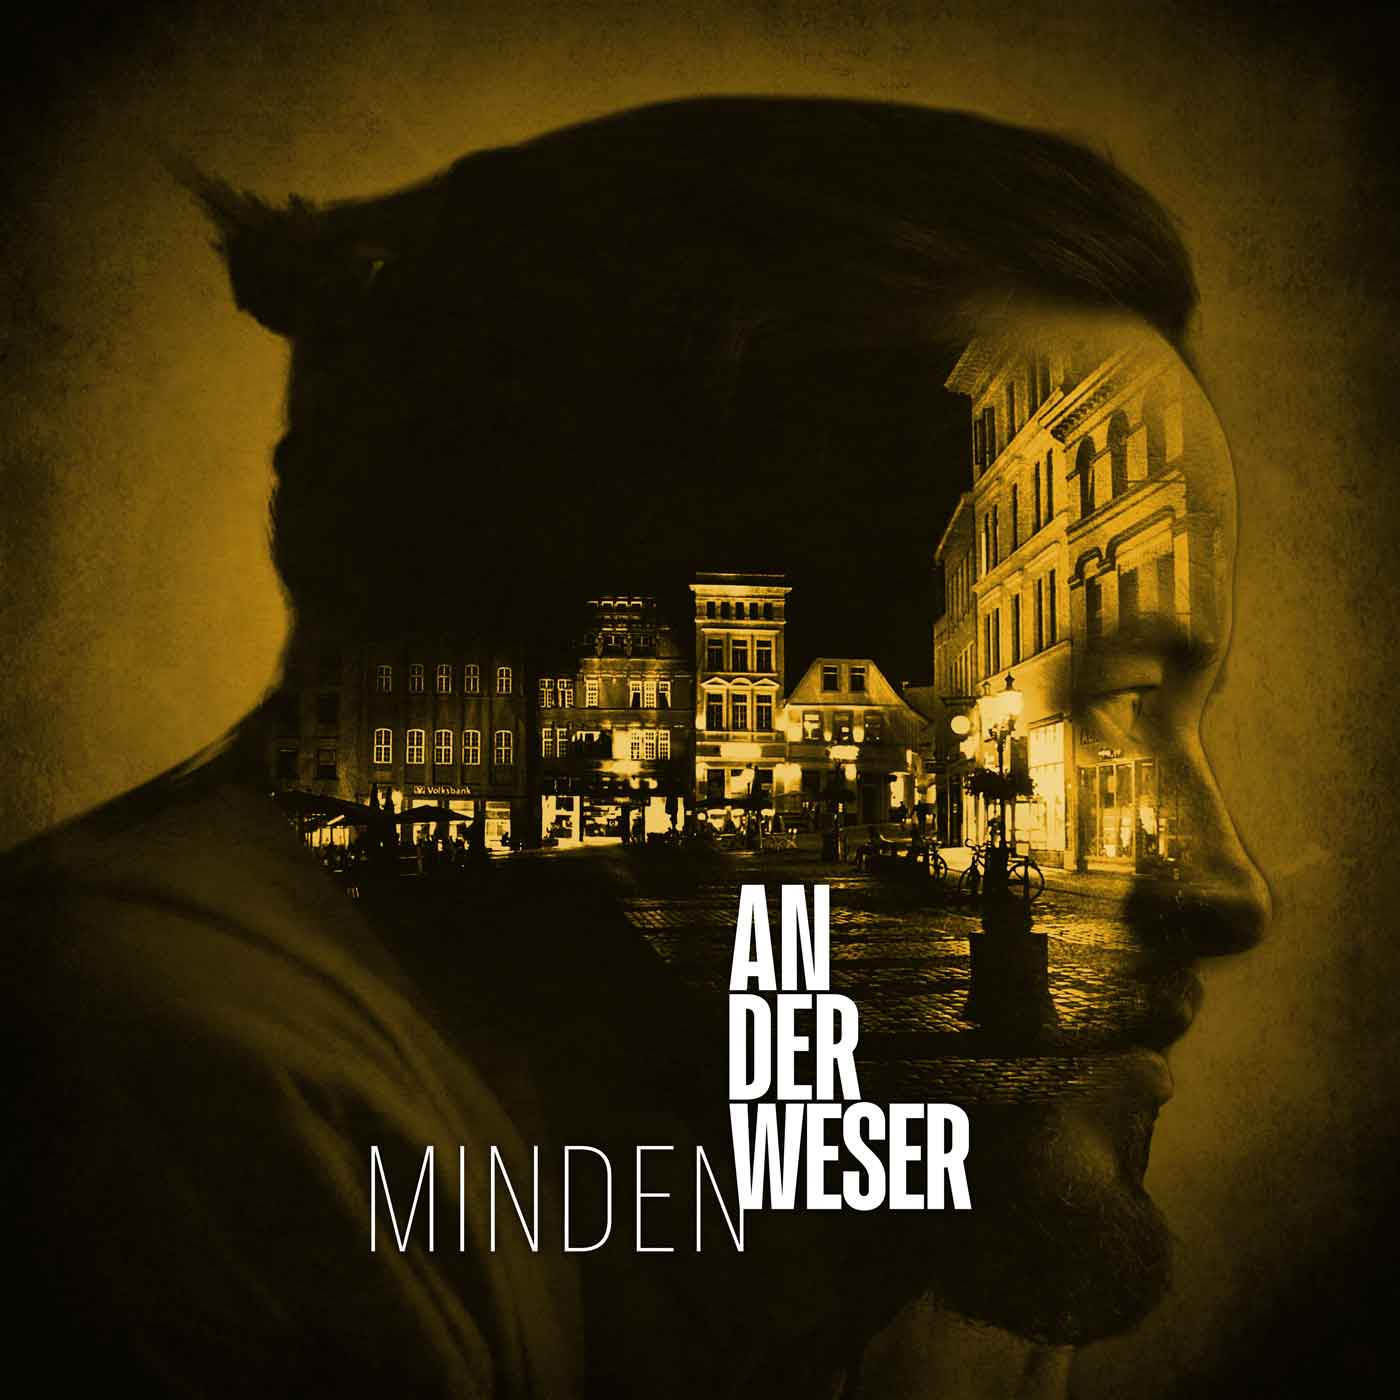 Minden an der Weser it's a state of mind